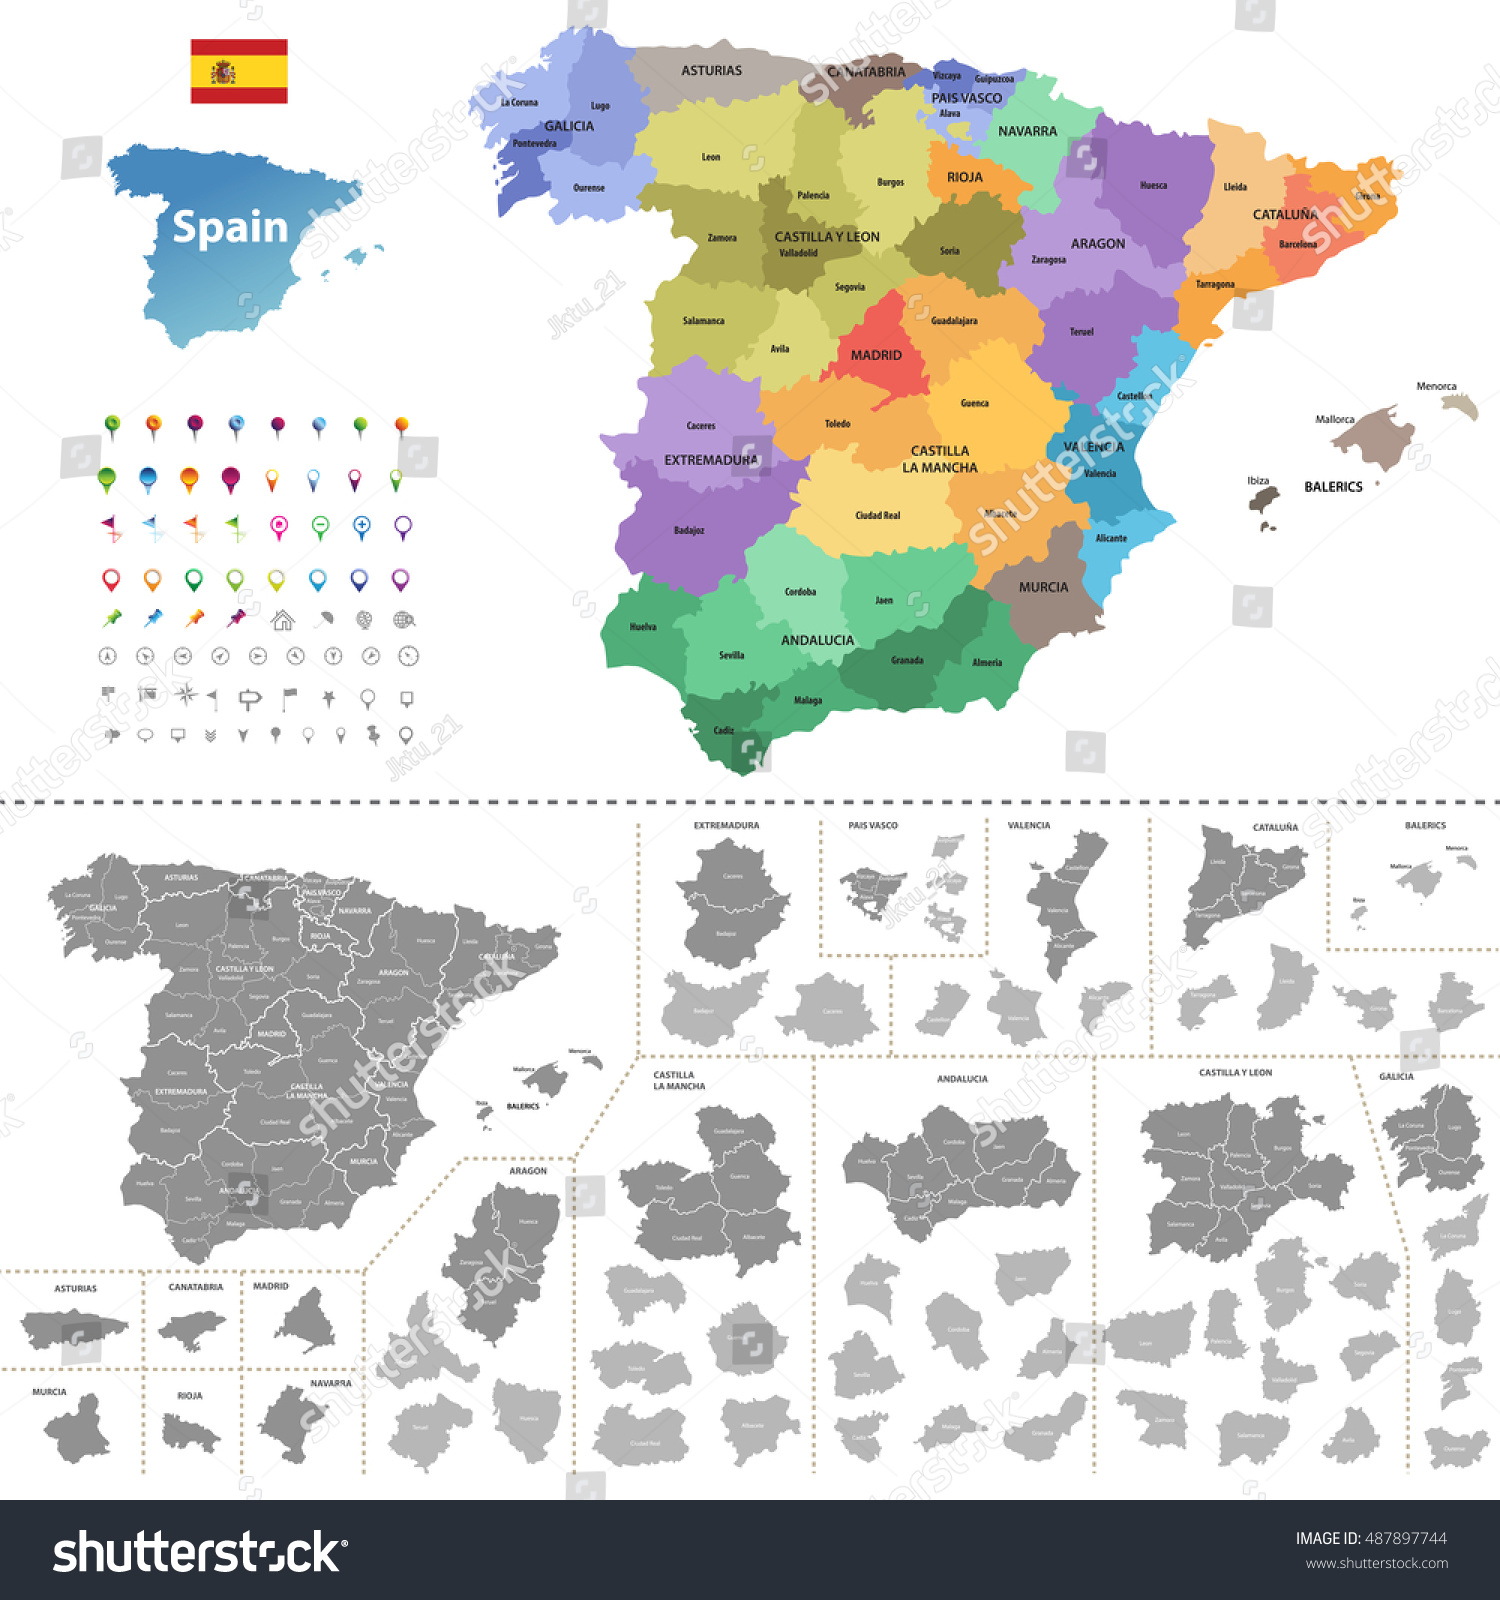 Spain High Detailed Vector Map Colored Stock Vector 2018 487897744